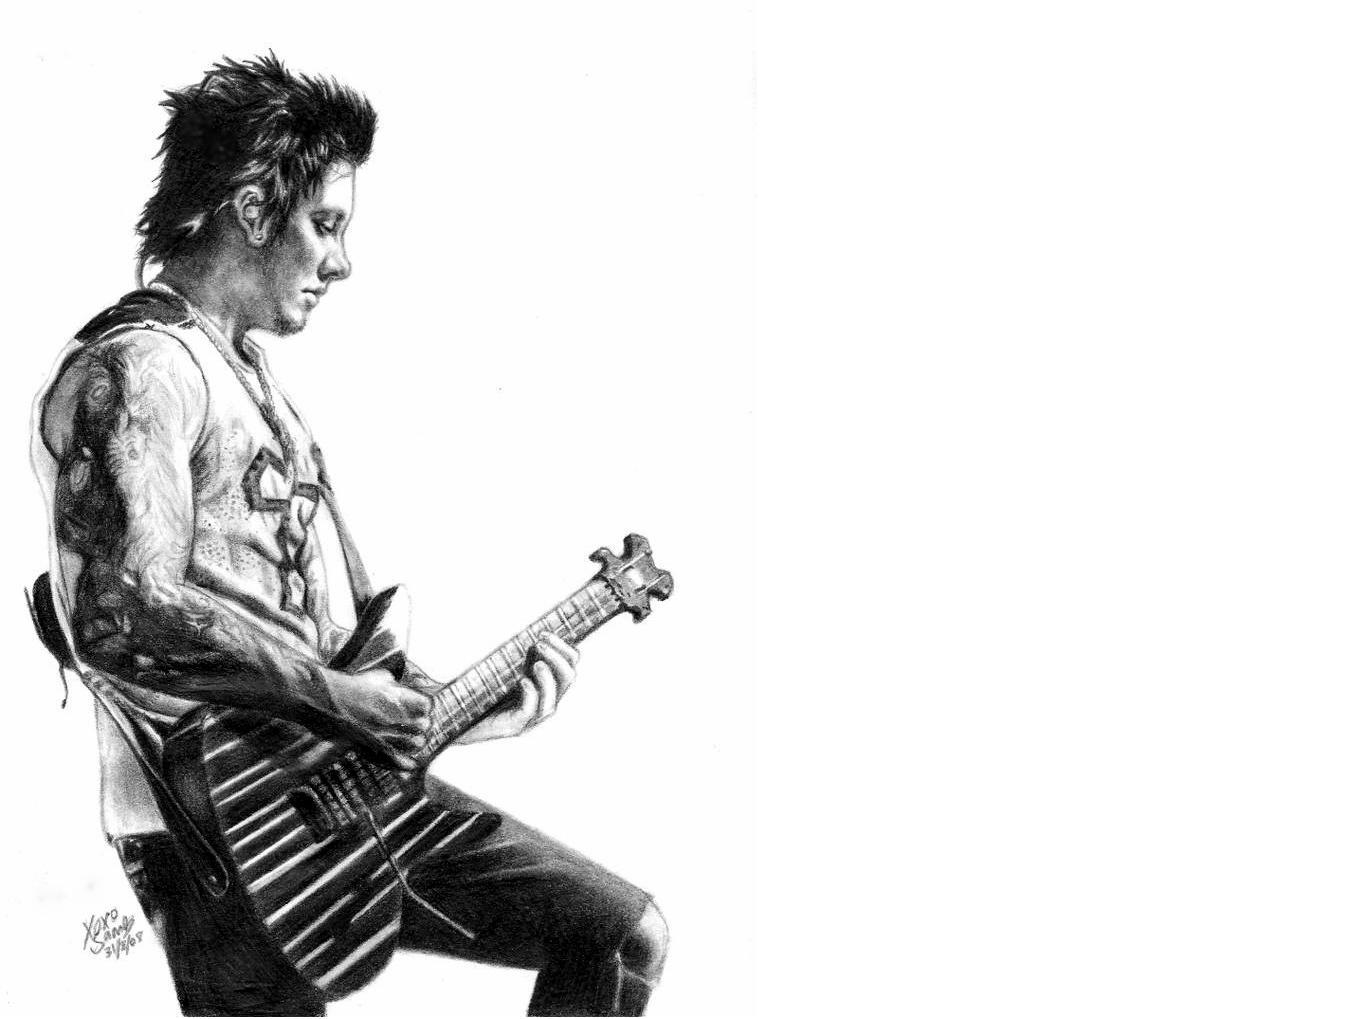 synyster gates by high HD Wallpaper